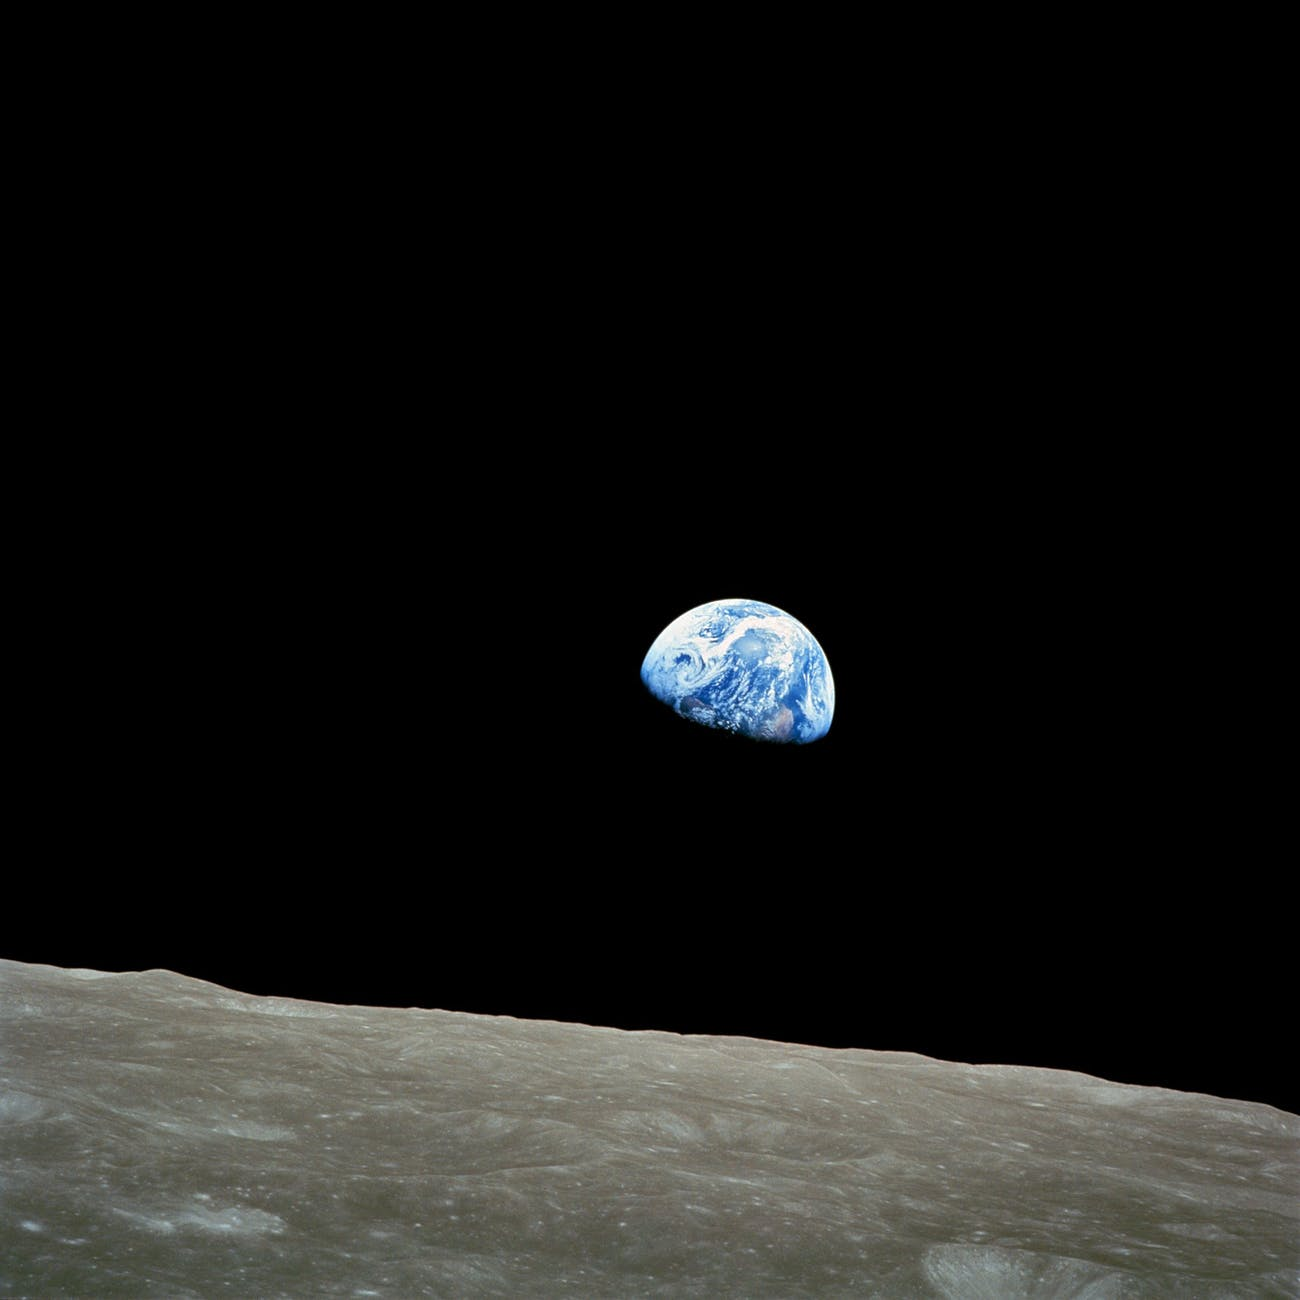 earth-soil-creep-moon-lunar-surface-87009.jpeg